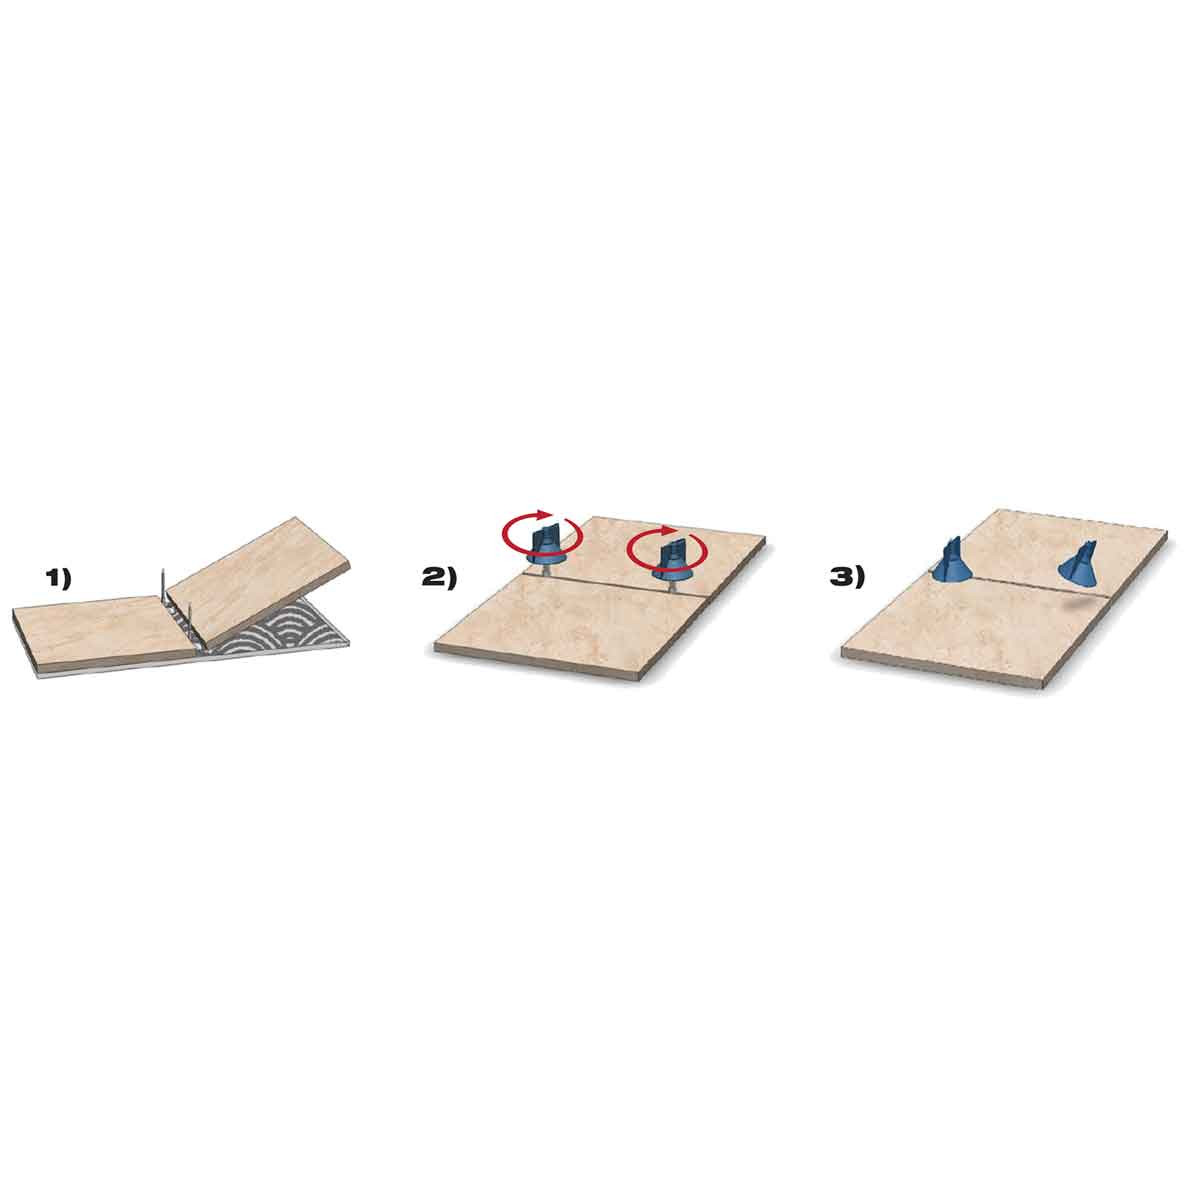 TLSS120 Primo Tools Tile Leveling System